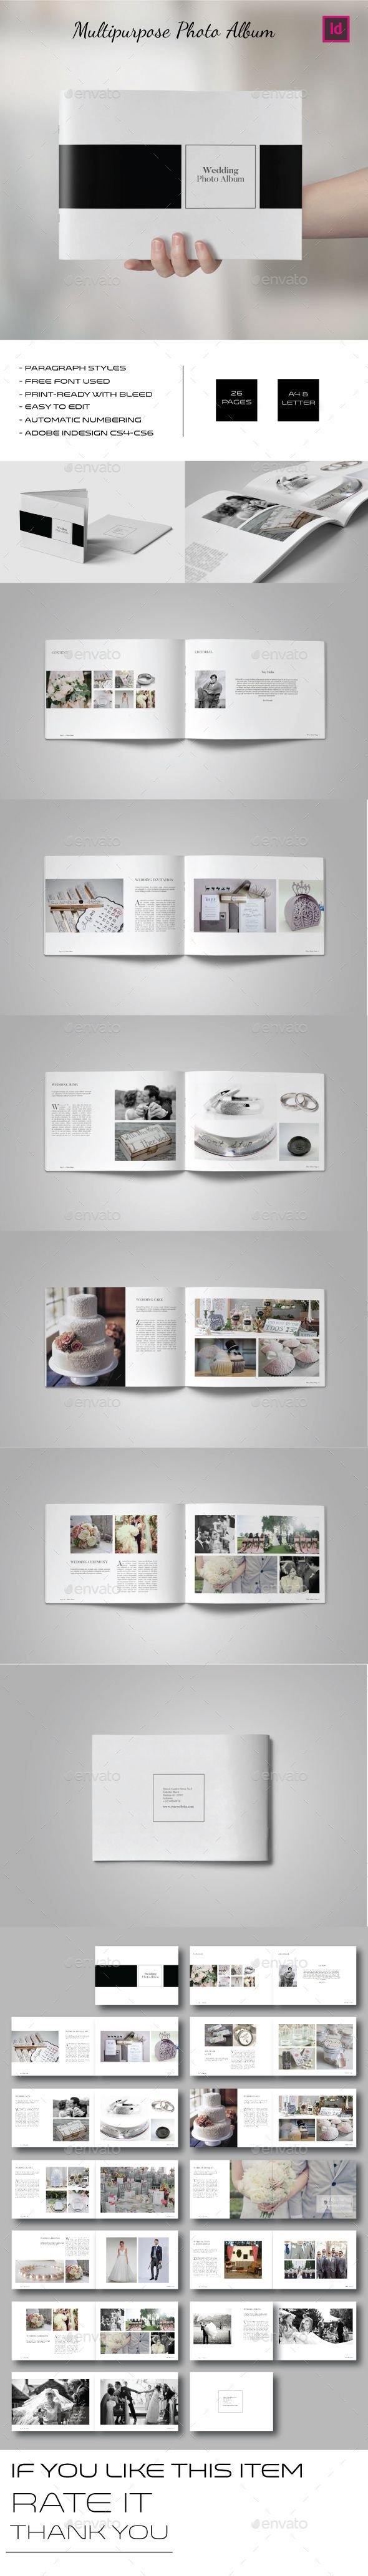 Multipurpose Landscape Photo Album | Álbum, Diseño editorial y ...